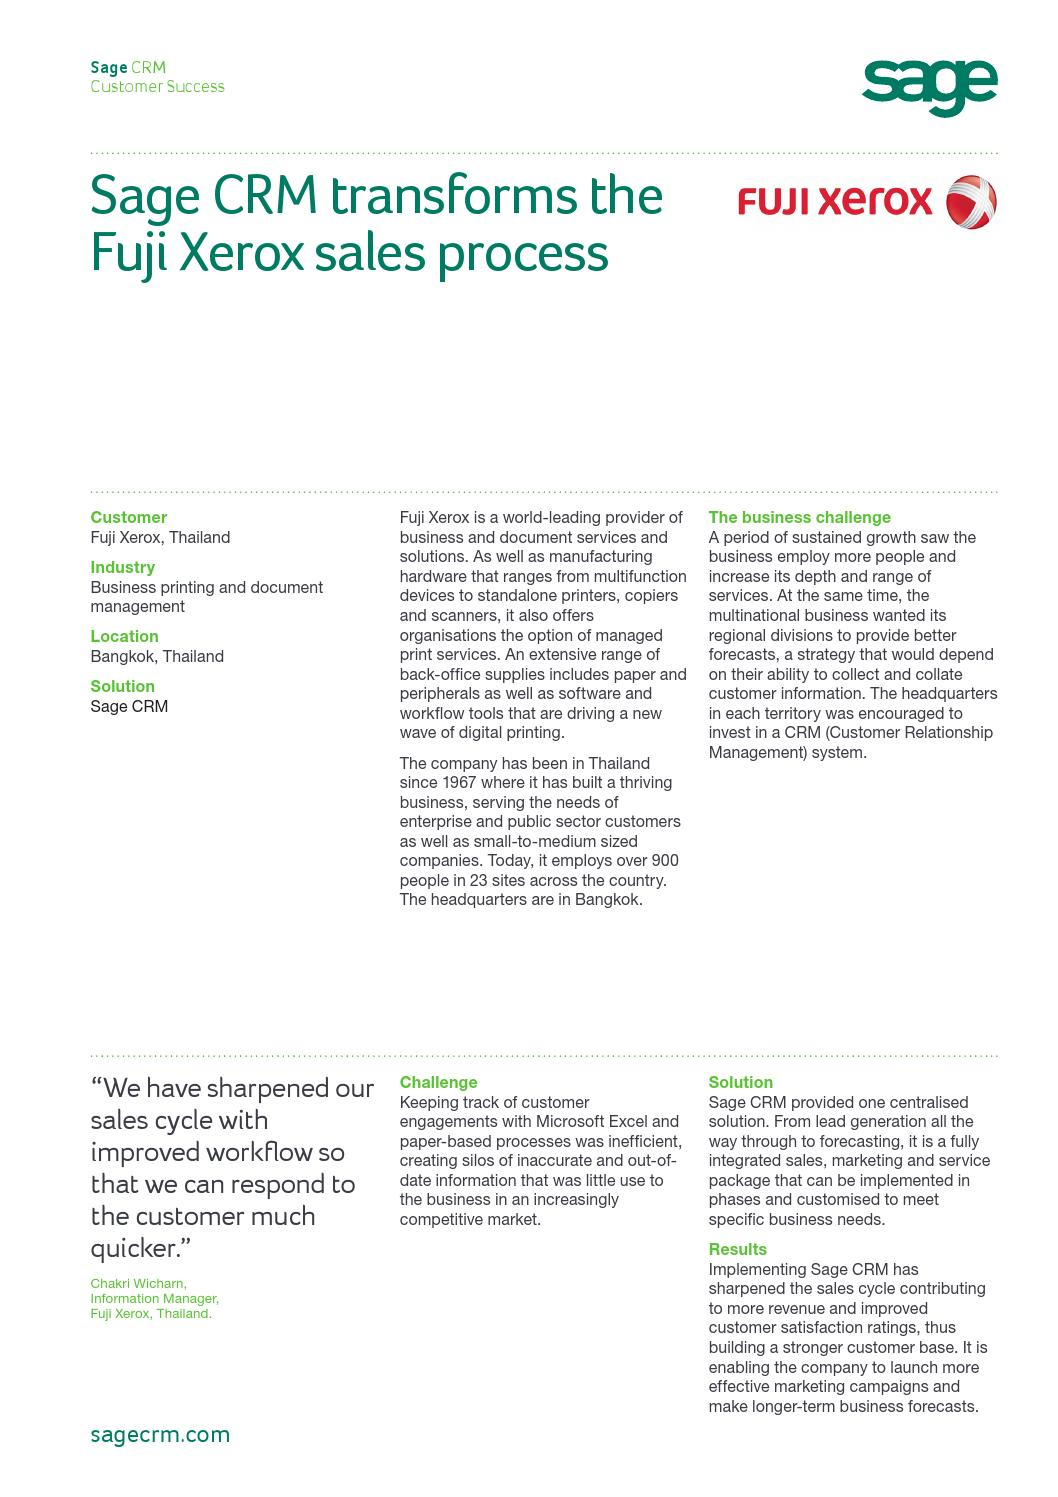 xerox the benchmarking story case study Quality america has steps and resources for benchmarking analysis  for  example, xerox corporation studied the retailer ll bean to help them improve  their.